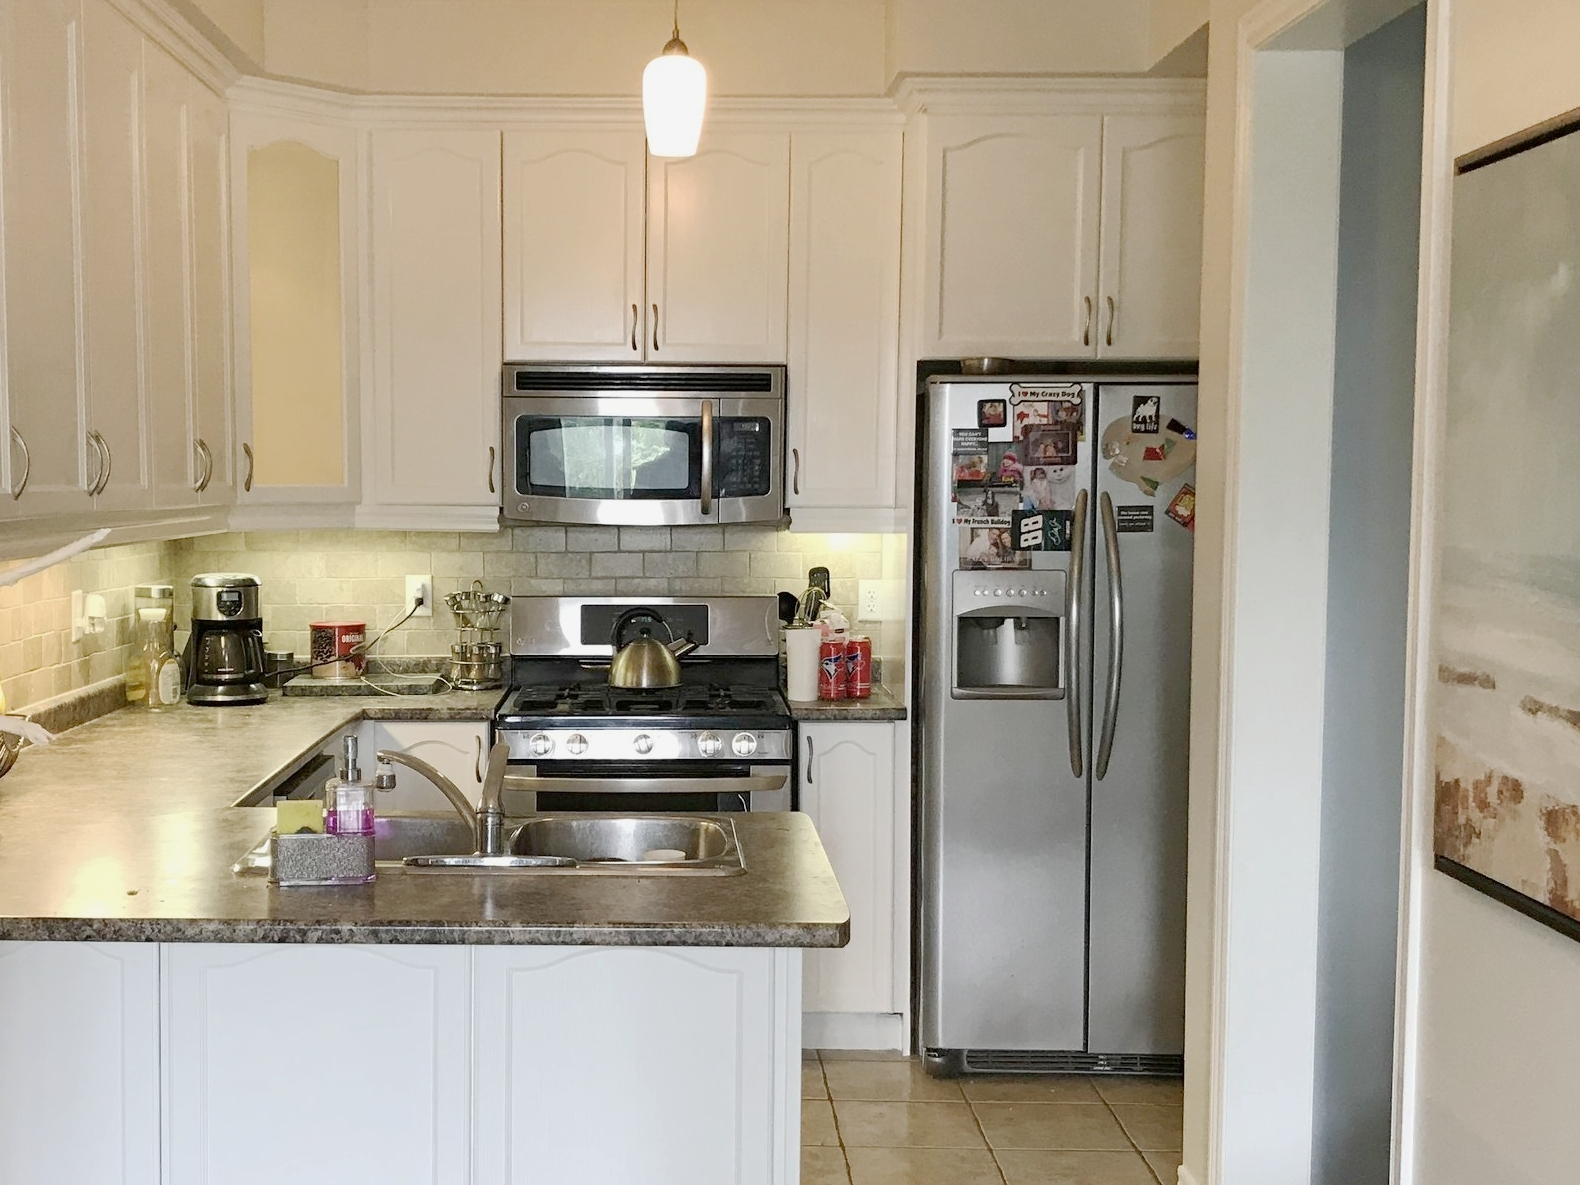 Cabinet Painting - We refinish cabinets and furniture as well. This usually requires three coats of paint. Oil paint is best for cabinets but requires a day of drying in between coats.Schedule Estimate